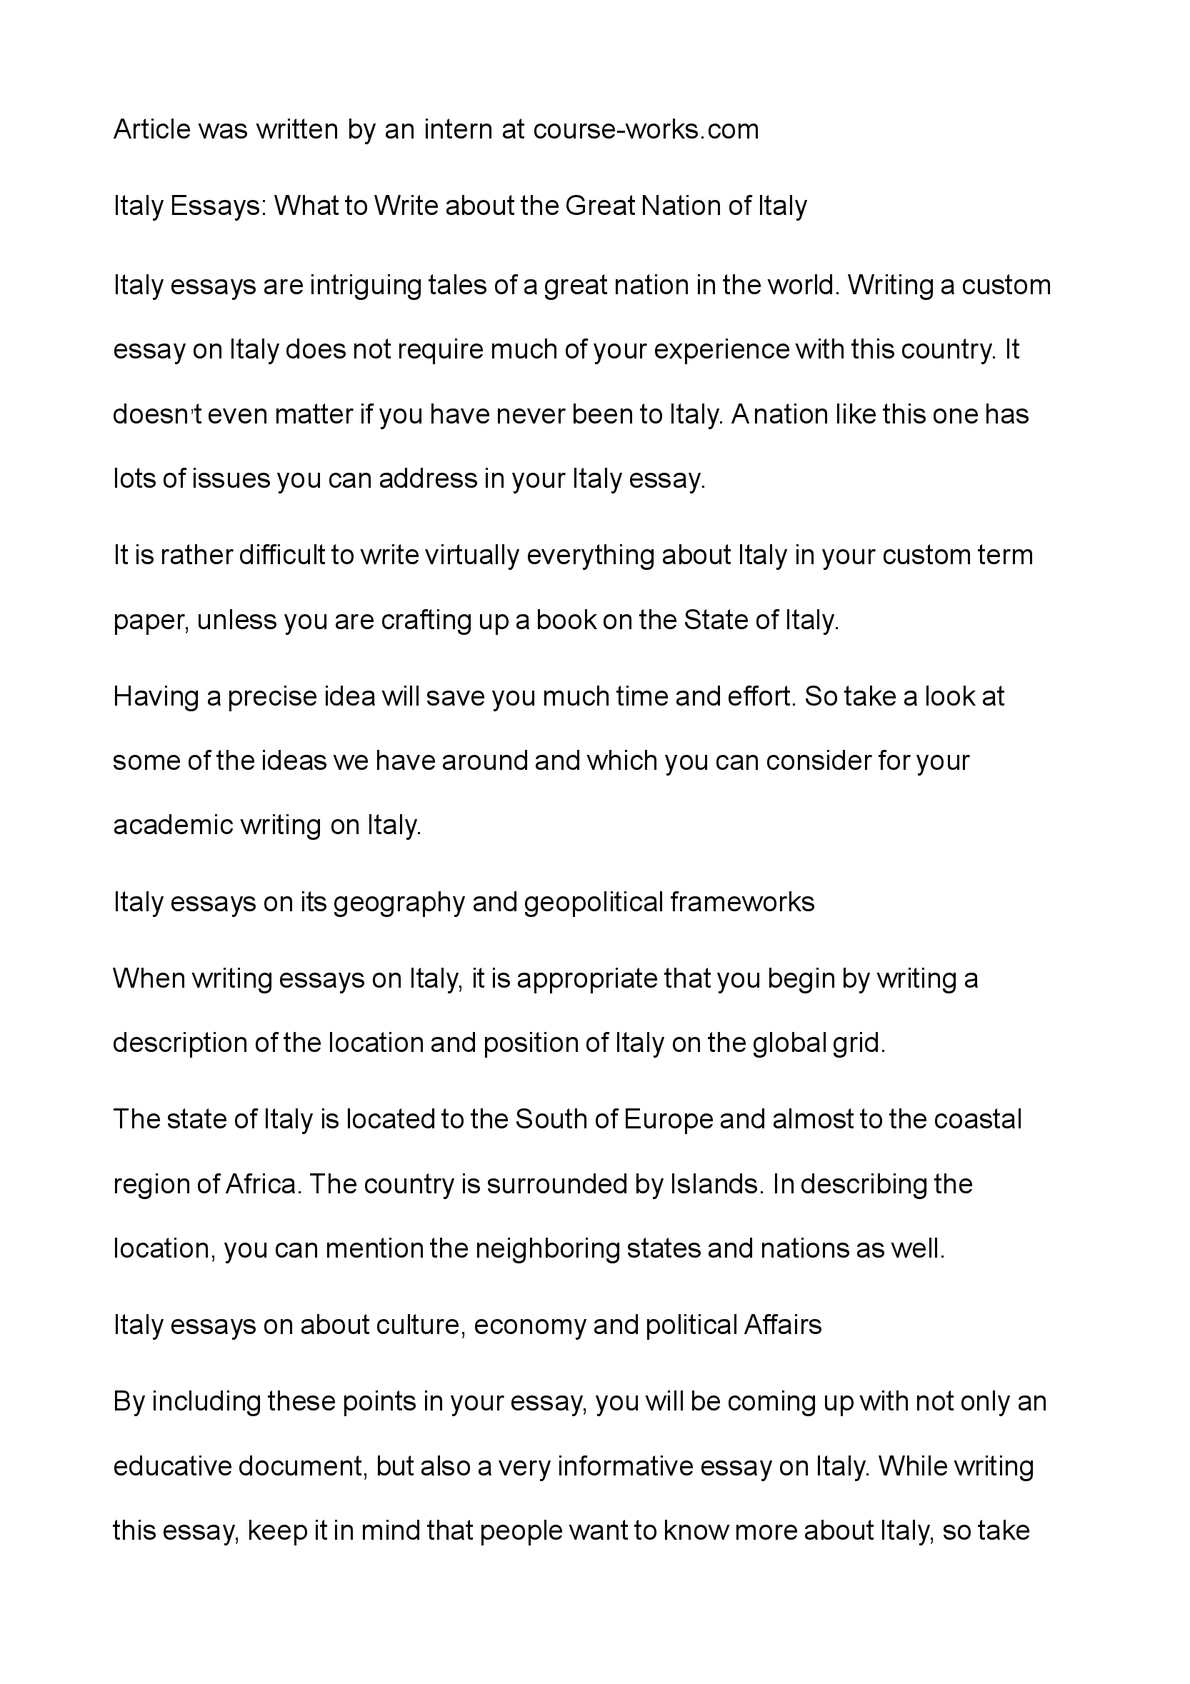 Charles Lamb Essays  Synthesis Essay Ideas also Example Of Illustrative Essay Calamo  Italy Essays What To Write About The Great Nation Of Italy College Essay Lesson Plans